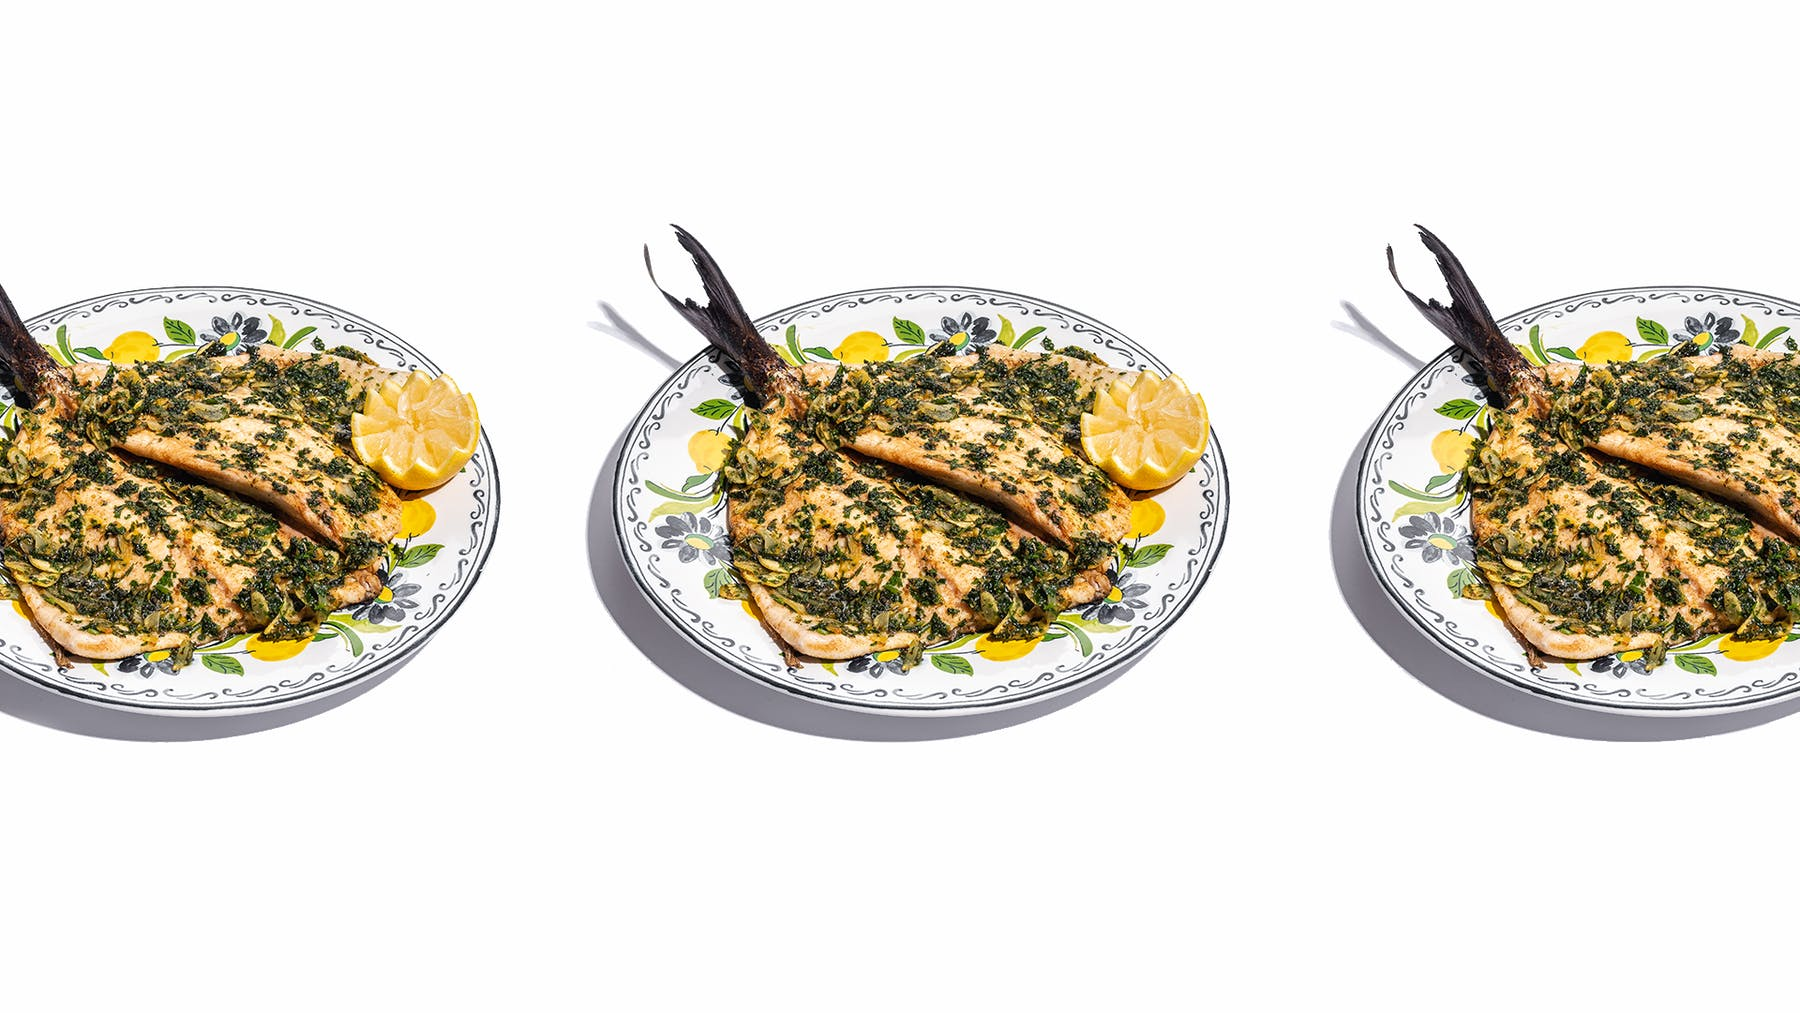 multiple plates of food sitting on a white surface